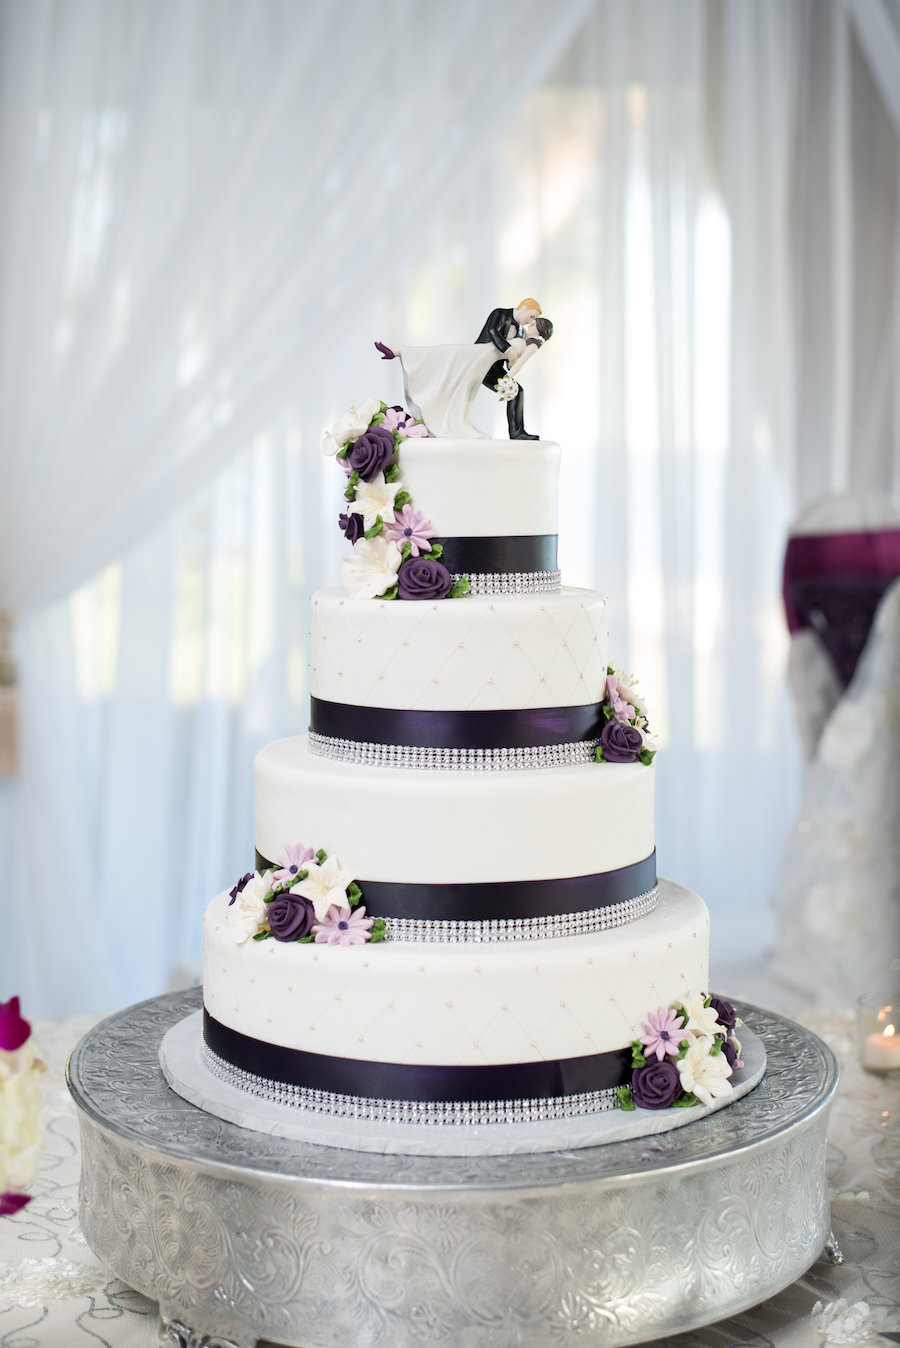 Four Tiered, White, Round Wedding Cake with Purple and Crystal Accents   Tampa Wedding Photographers Caroline and Evan Photography